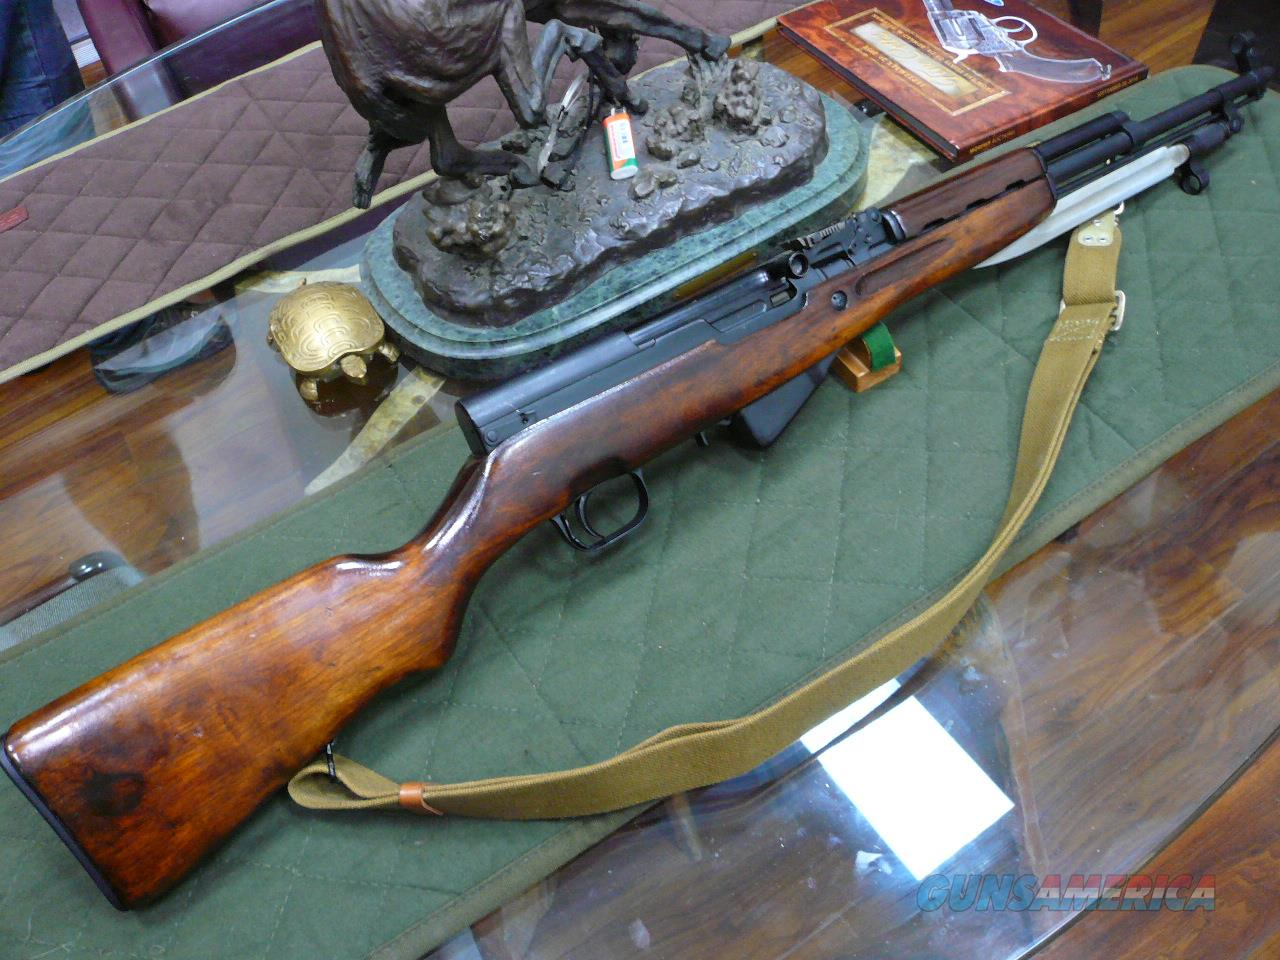 CAI.ST.ALB.VT IMPORTED  RUSSIAN SKS 7.62X39  Guns > Rifles > SKS Rifles